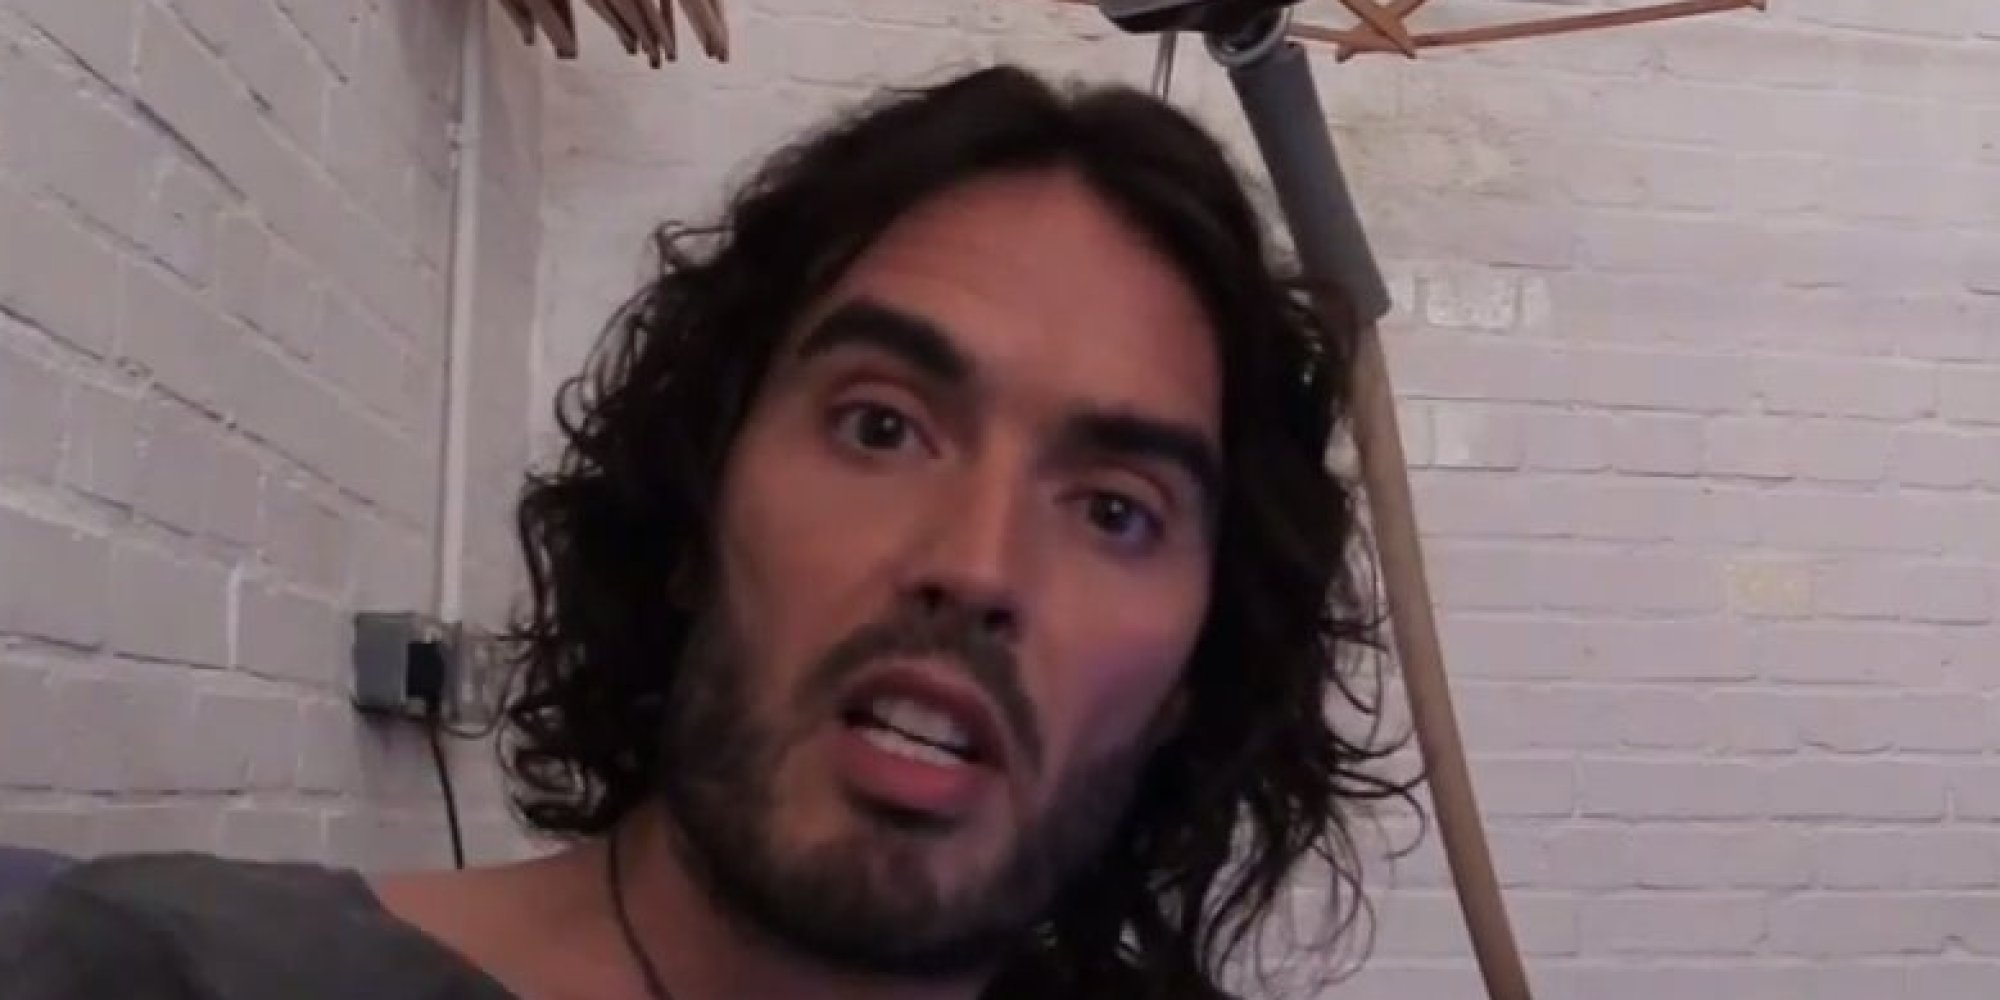 russell brand calls bill o u0026 39 reilly a  u0026 39 disgrace u0026 39  to the american flag